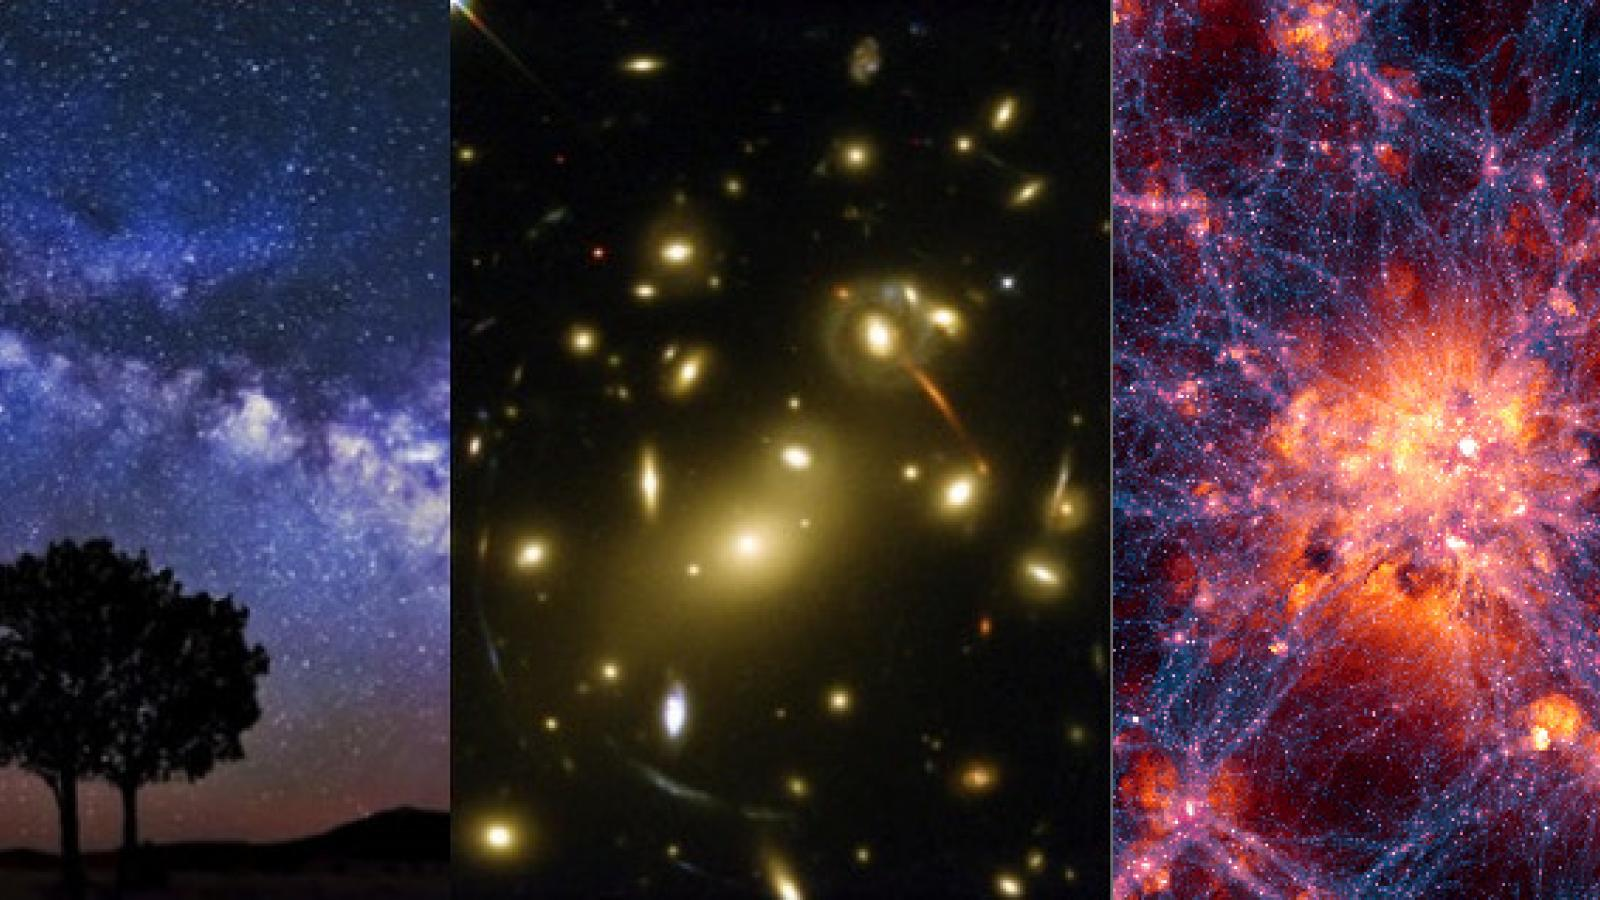 Ast1141 - Stars, Galaxies, and the Universe